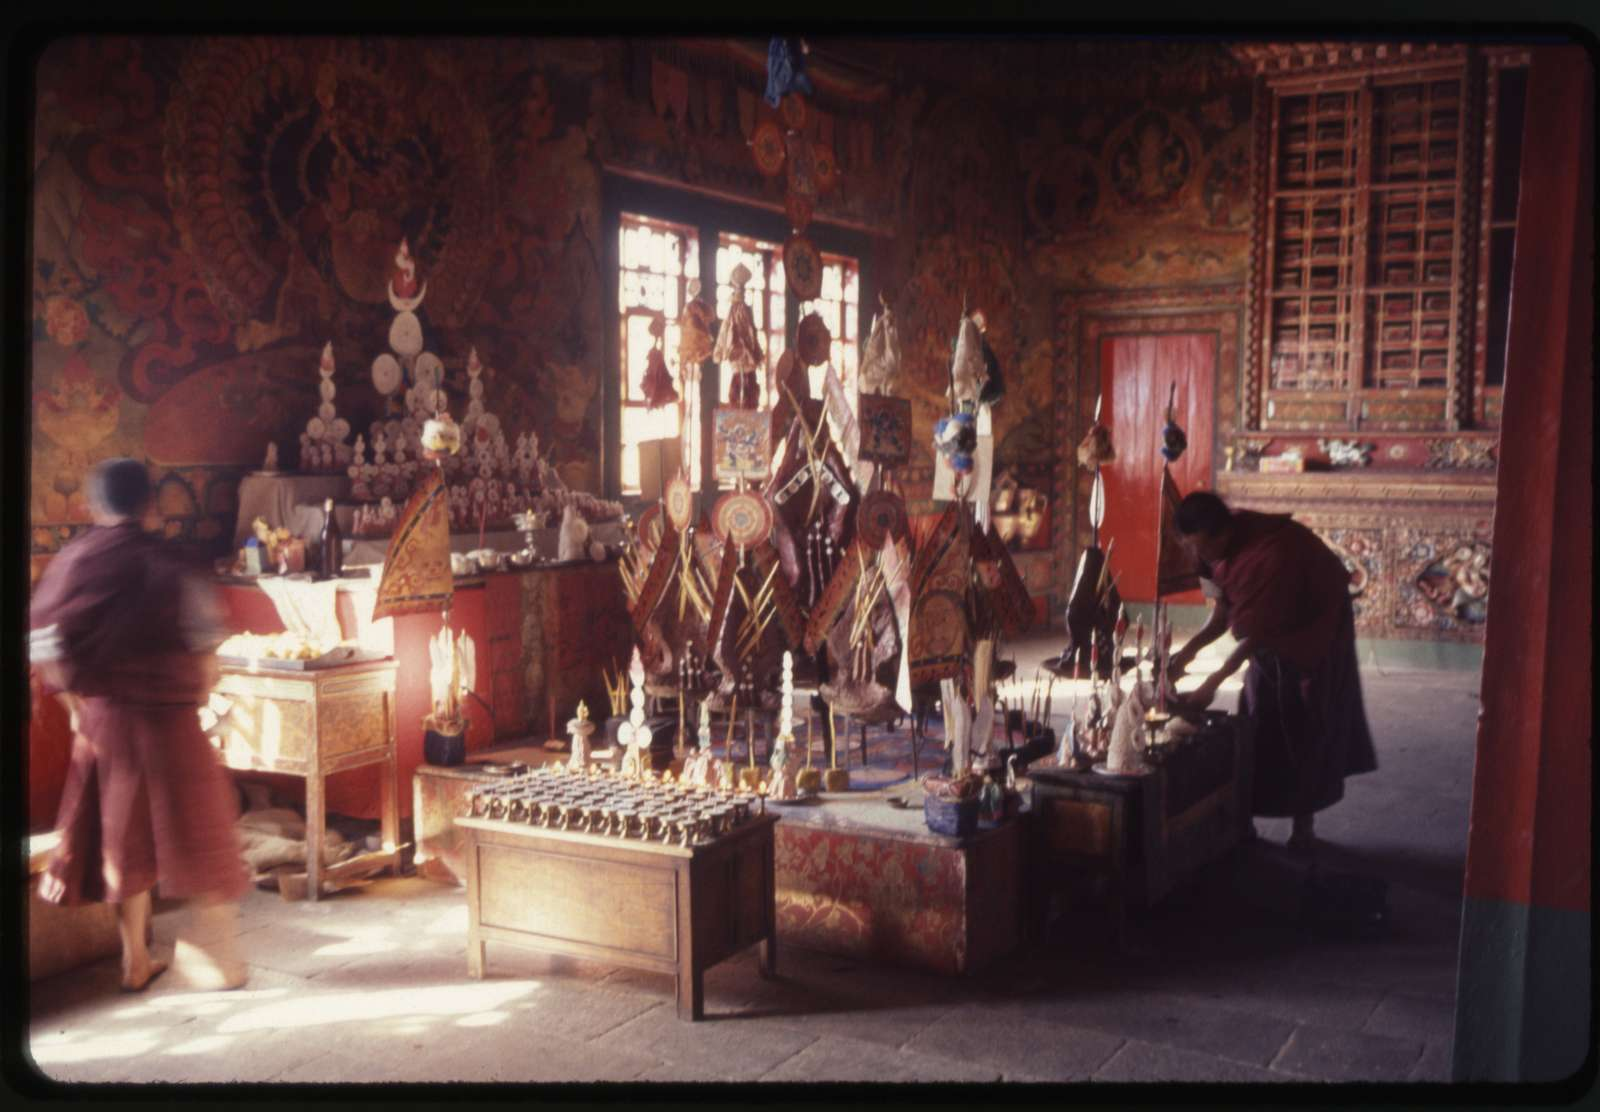 [Altar with butter lamps, butter paste offerings (torma) and images to be burned at the end of New Year's ceremony in the palace monastery, Gangtok, Sikkim]